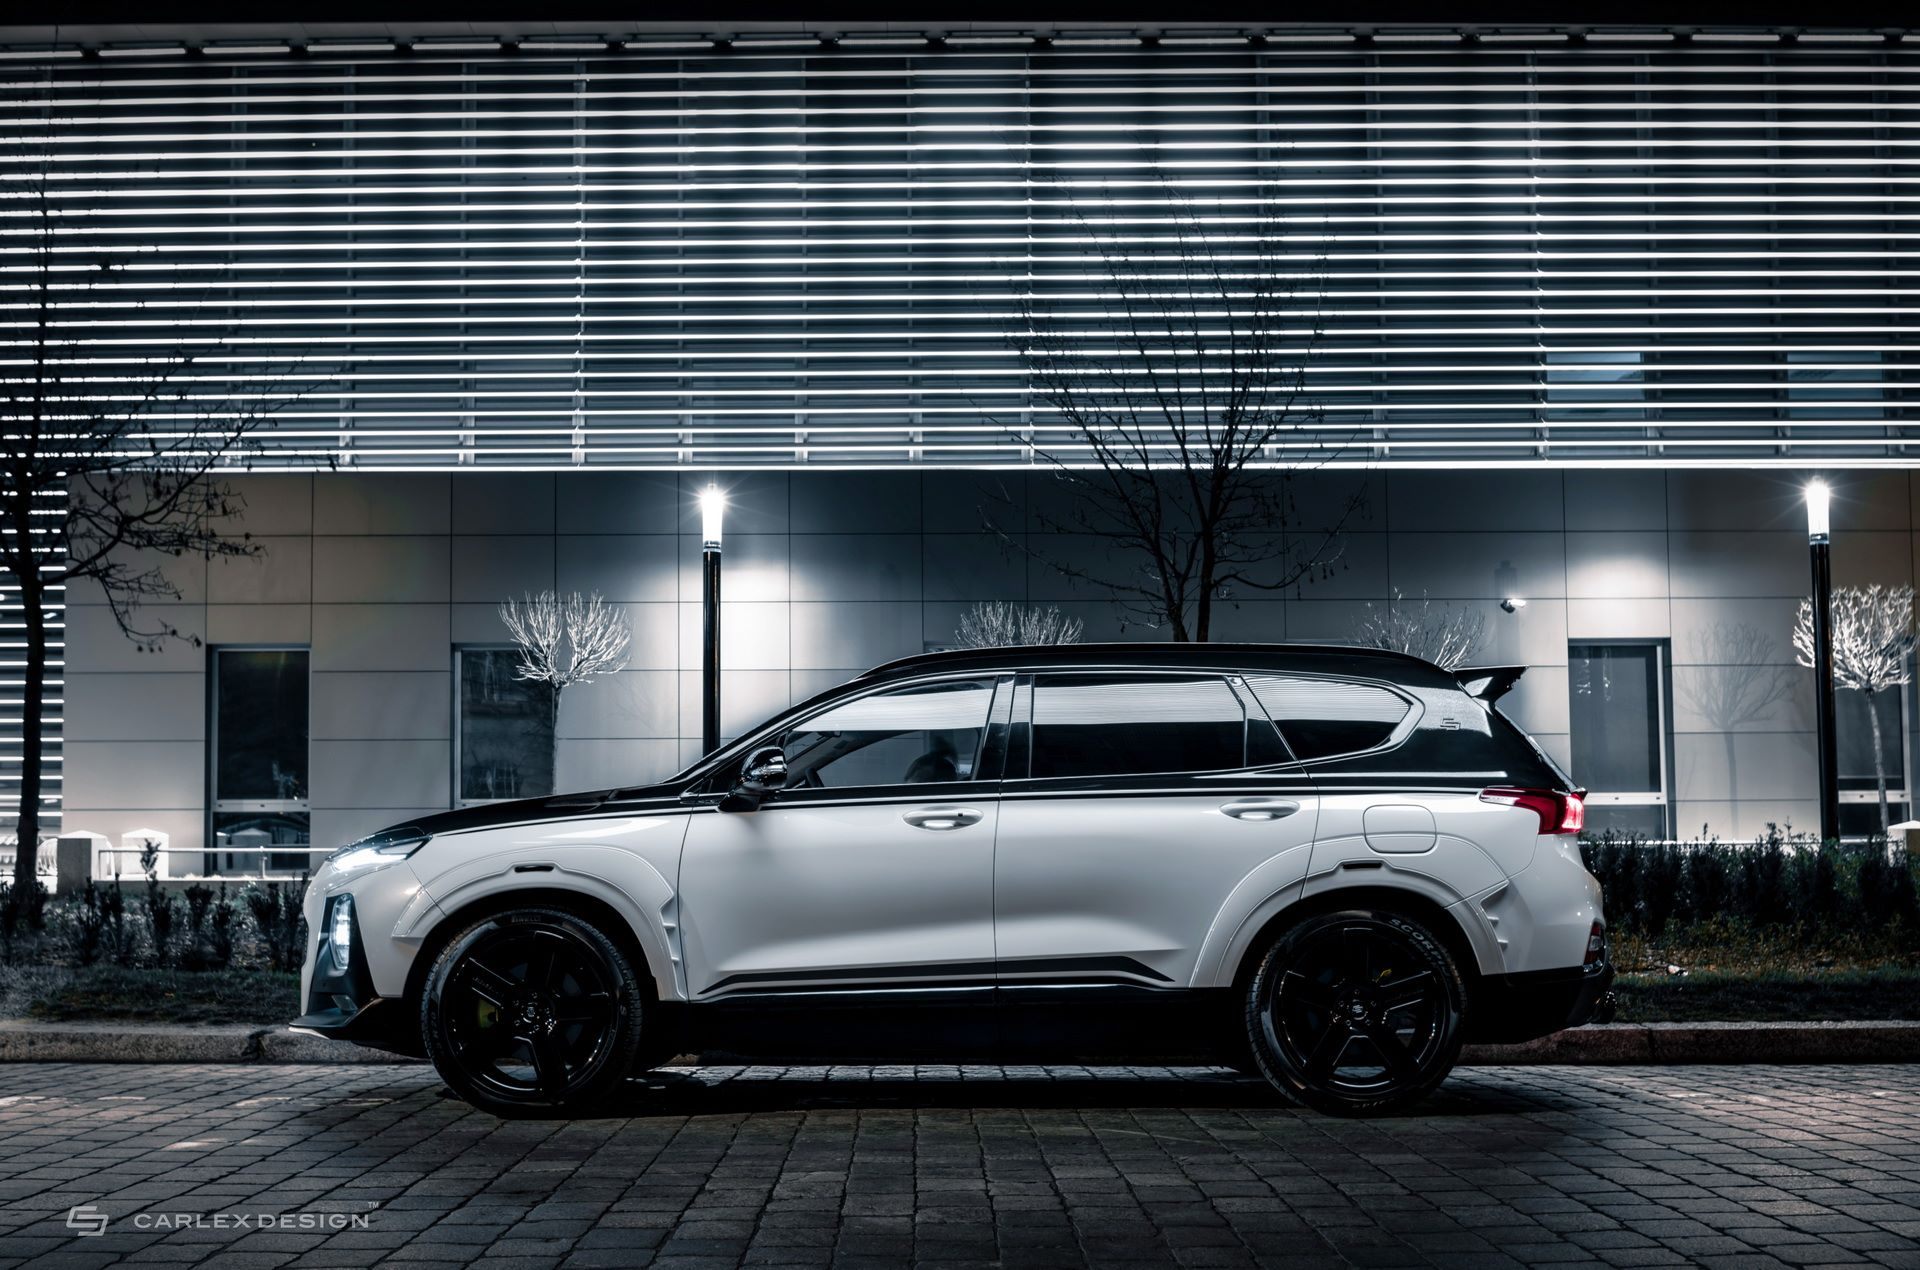 Hyundai-Santa-Fe-Urban-Edition-by-Carlex-Design-12